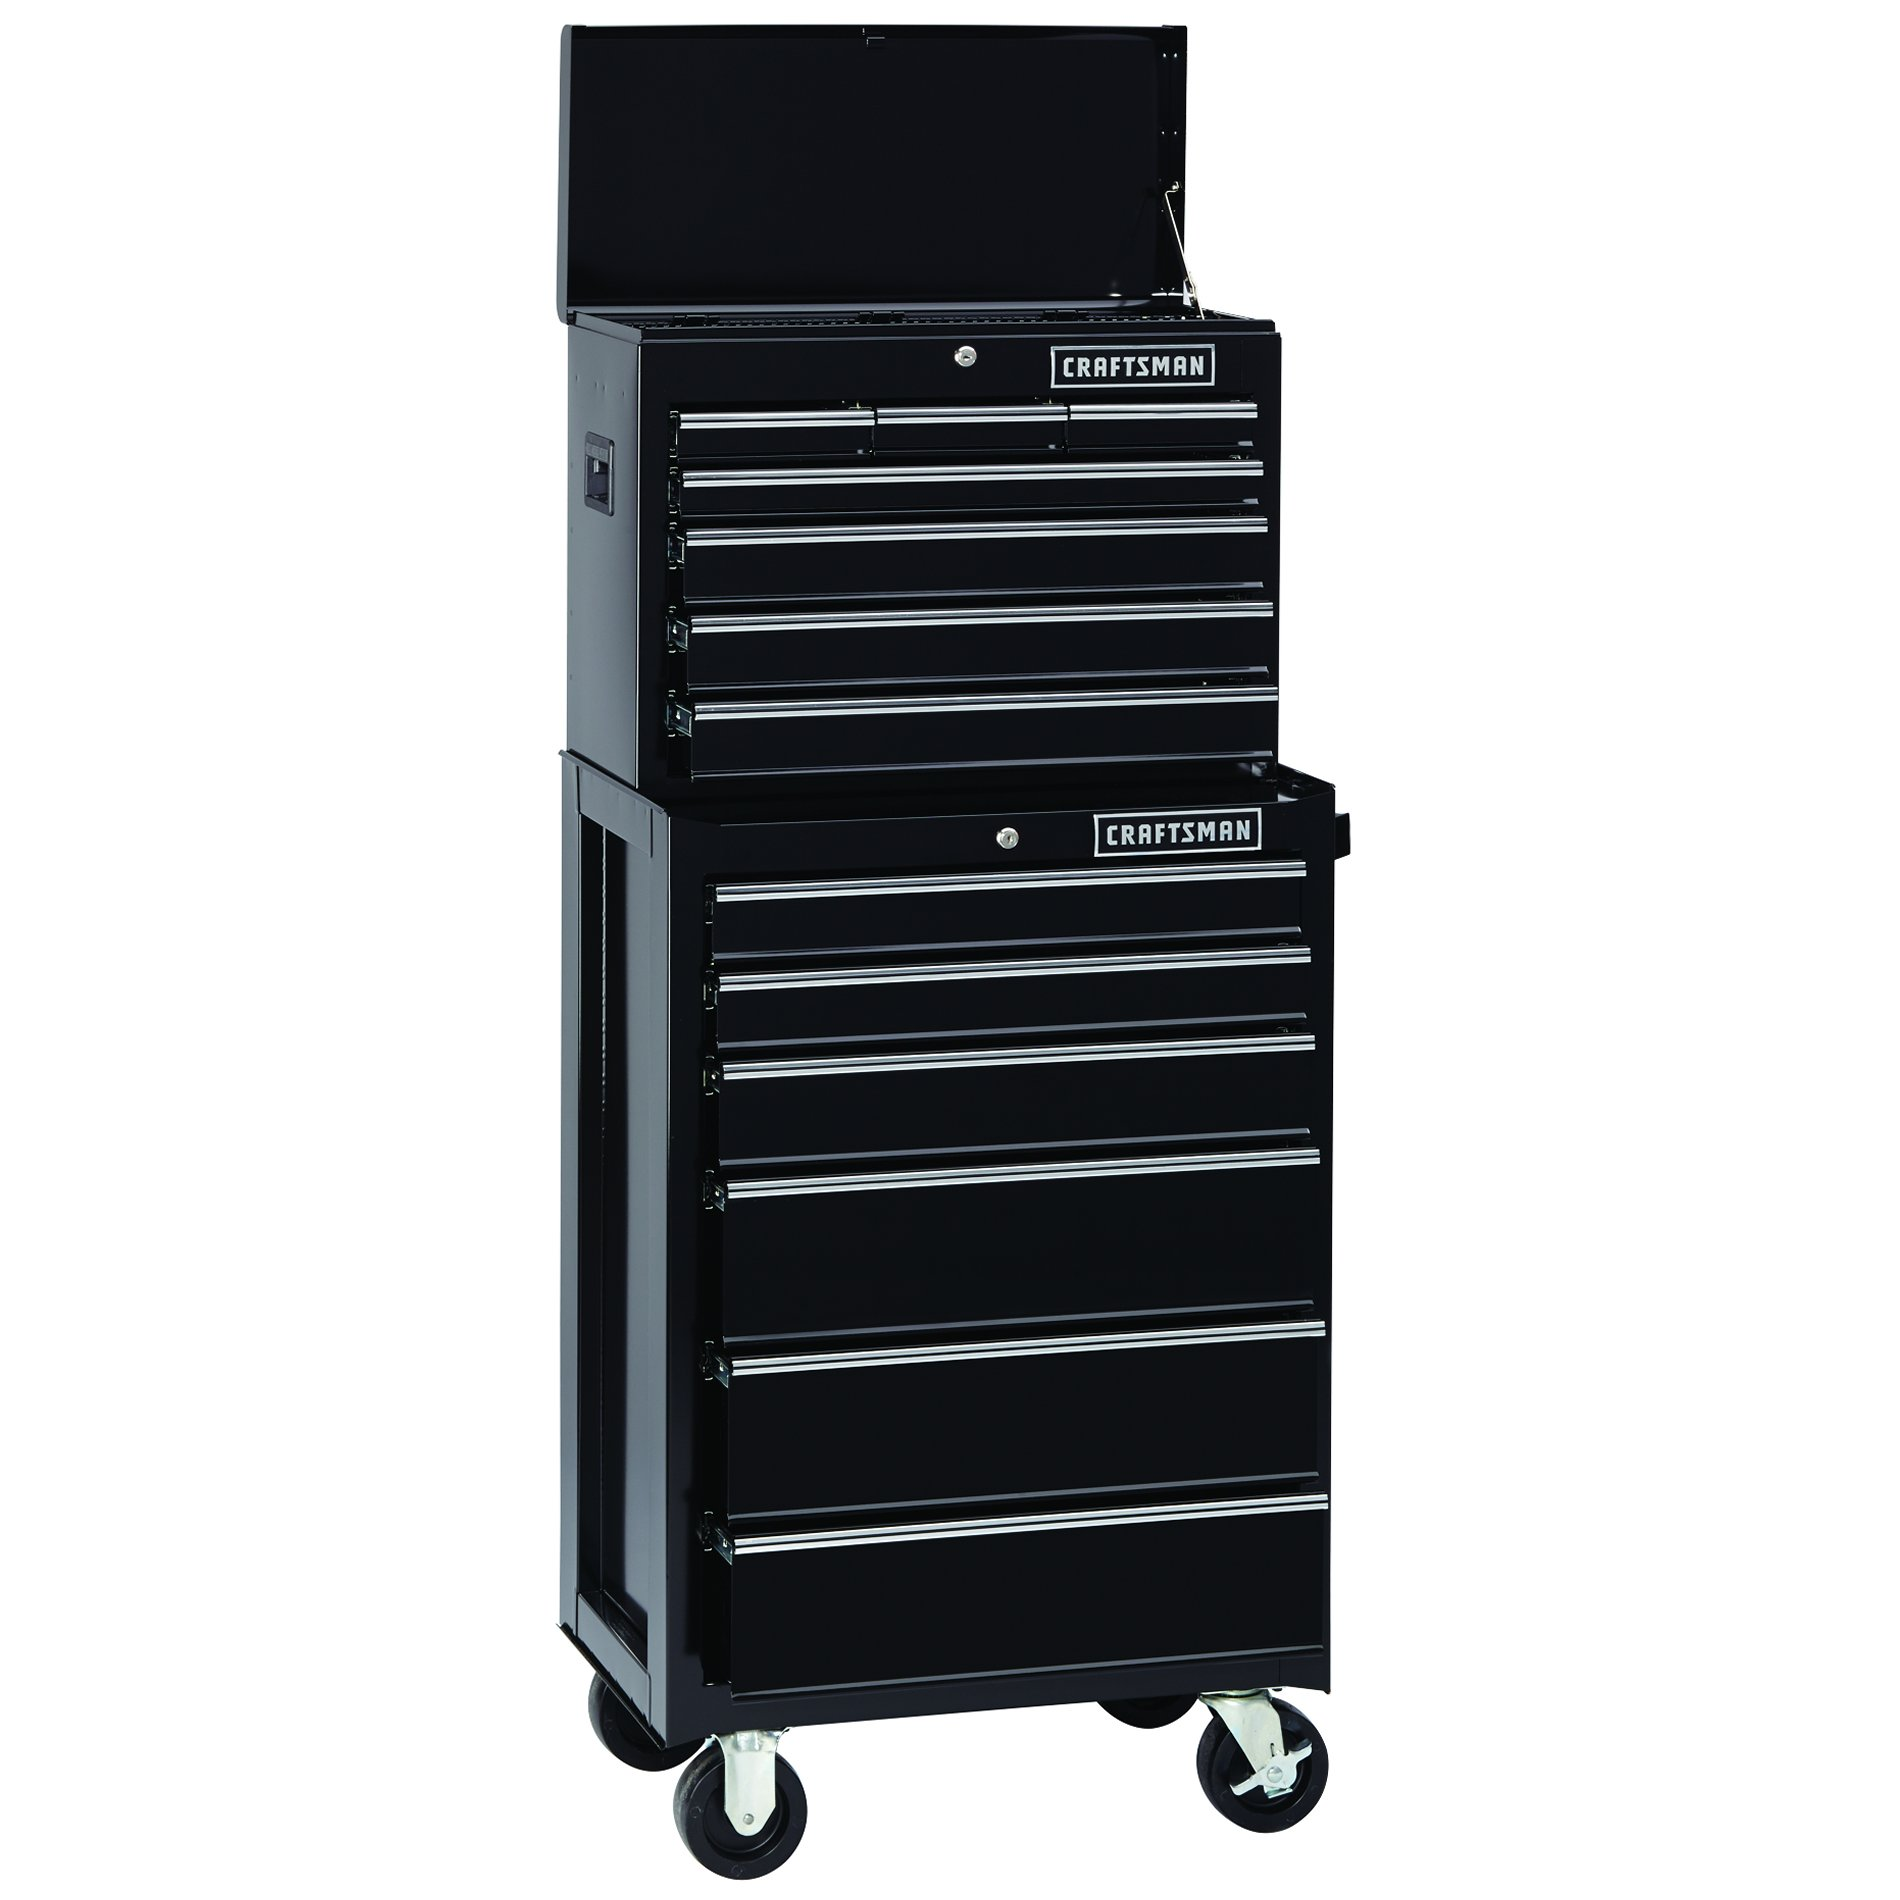 6-Drawer Heavy-Duty Ball-Bearing Rolling Cabinet - Black